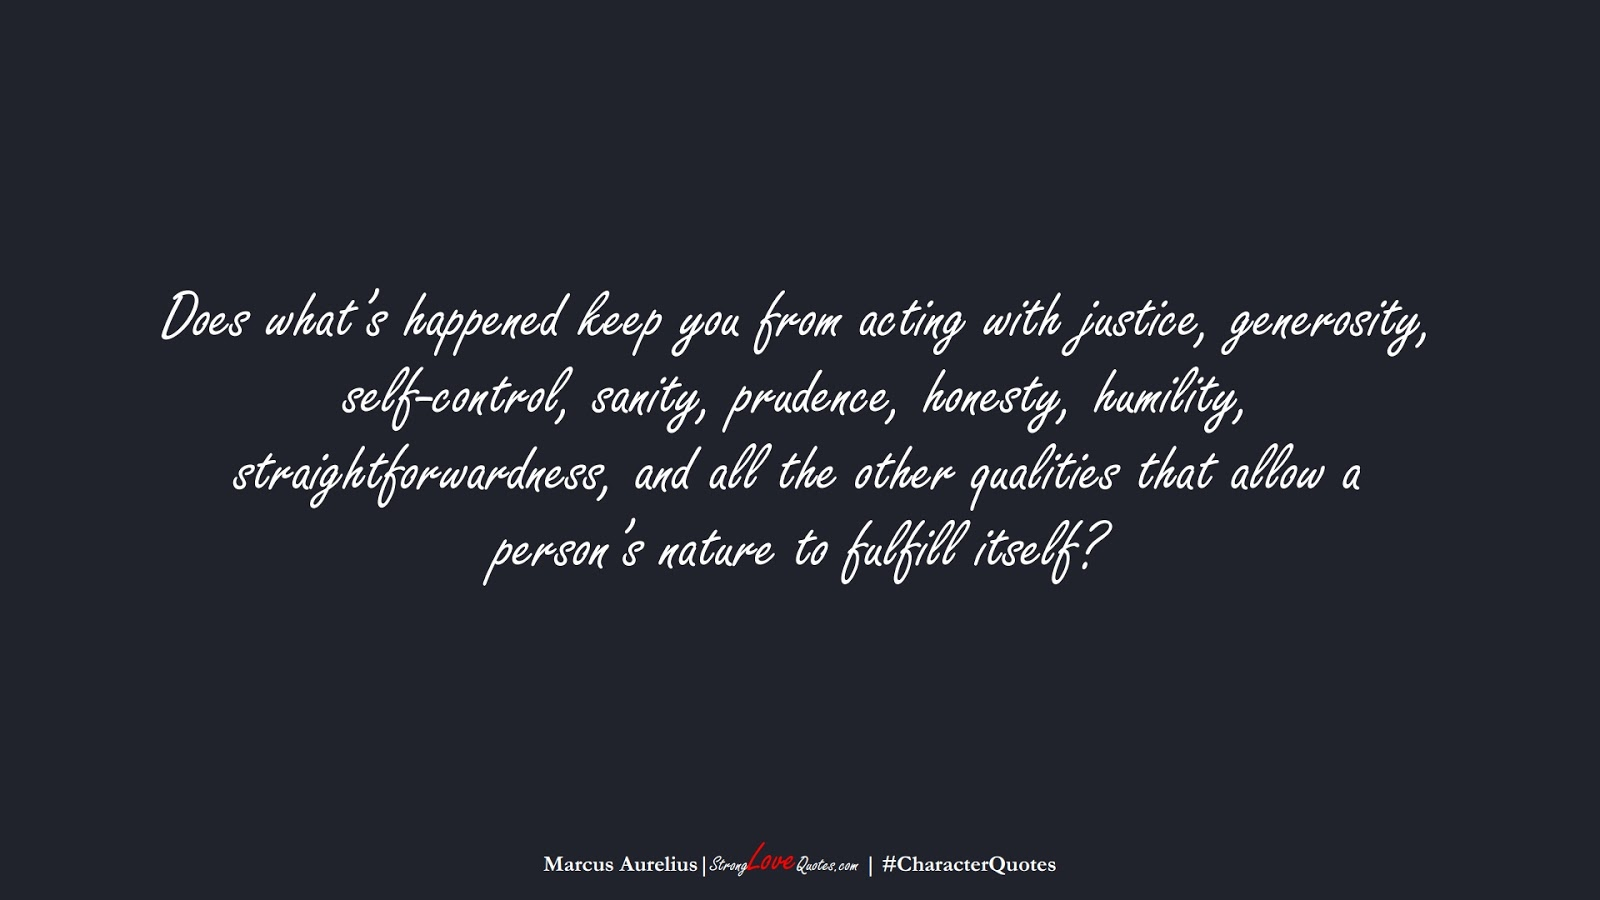 Does what's happened keep you from acting with justice, generosity, self-control, sanity, prudence, honesty, humility, straightforwardness, and all the other qualities that allow a person's nature to fulfill itself? (Marcus Aurelius);  #CharacterQuotes